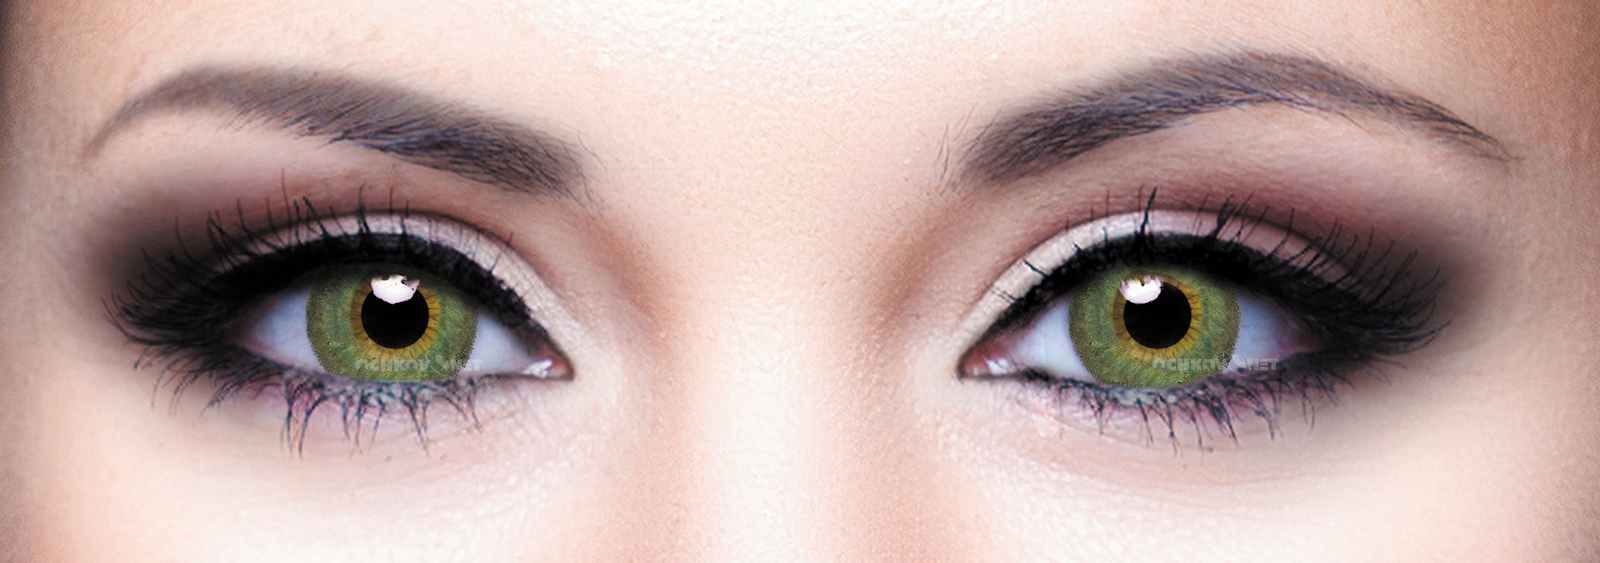 Buy Contact Lenses Freshlook Dimensions In Germany At Low